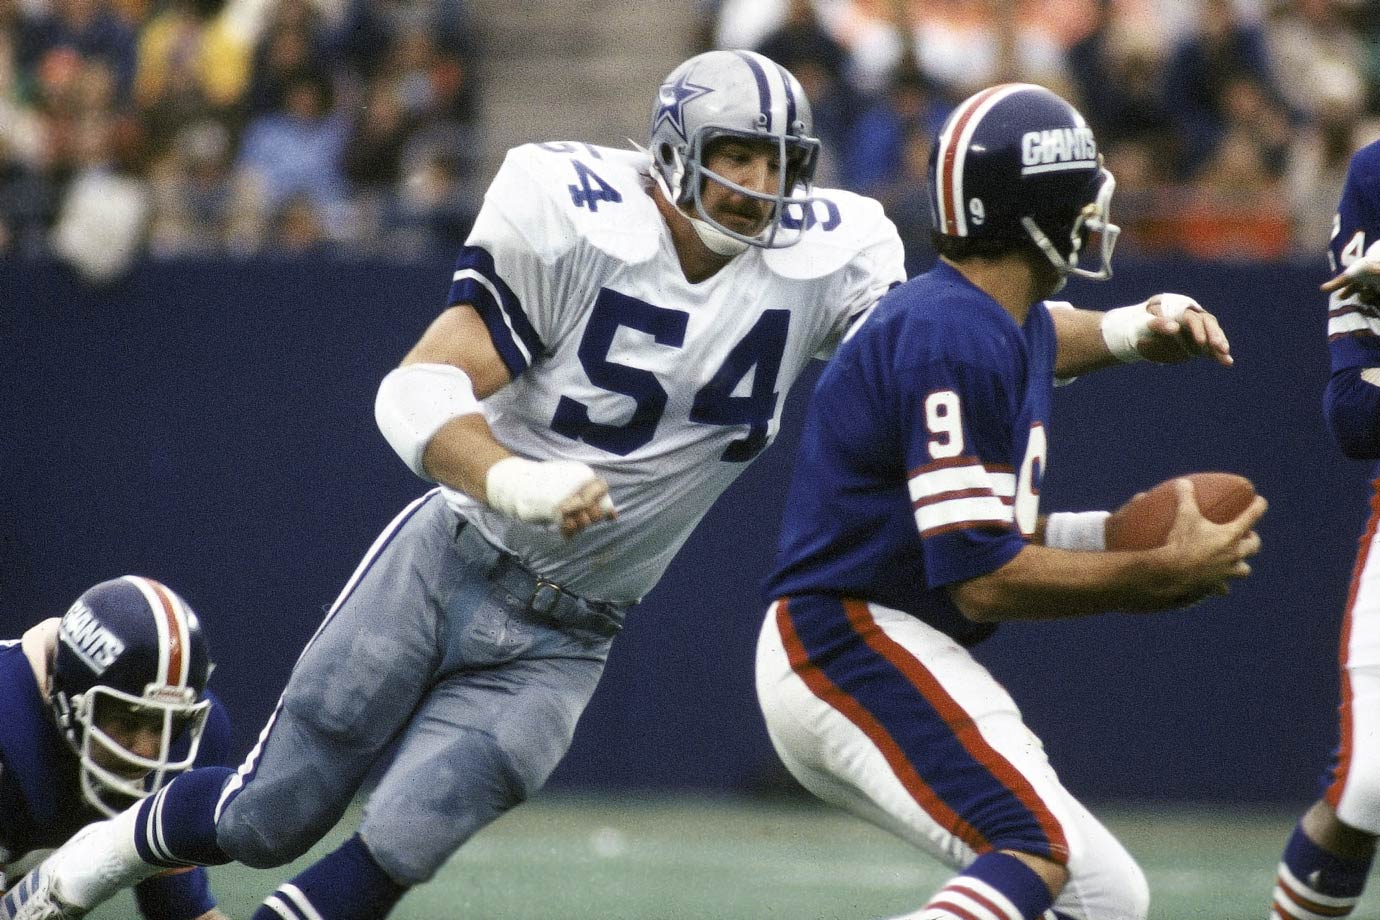 One of the most intimidating, consistent, and technically-sound players of his era. The Cowboys tried White at linebacker for two seasons, and then got it right when they moved him to tackle in 1977. For his career, White was credited with 1,104 tackles, 701 solo tackles and 111 sacks, made nine Pro Bowls and seven First-Team All-Pro selections, and was the Super Bowl XII co-MVP.